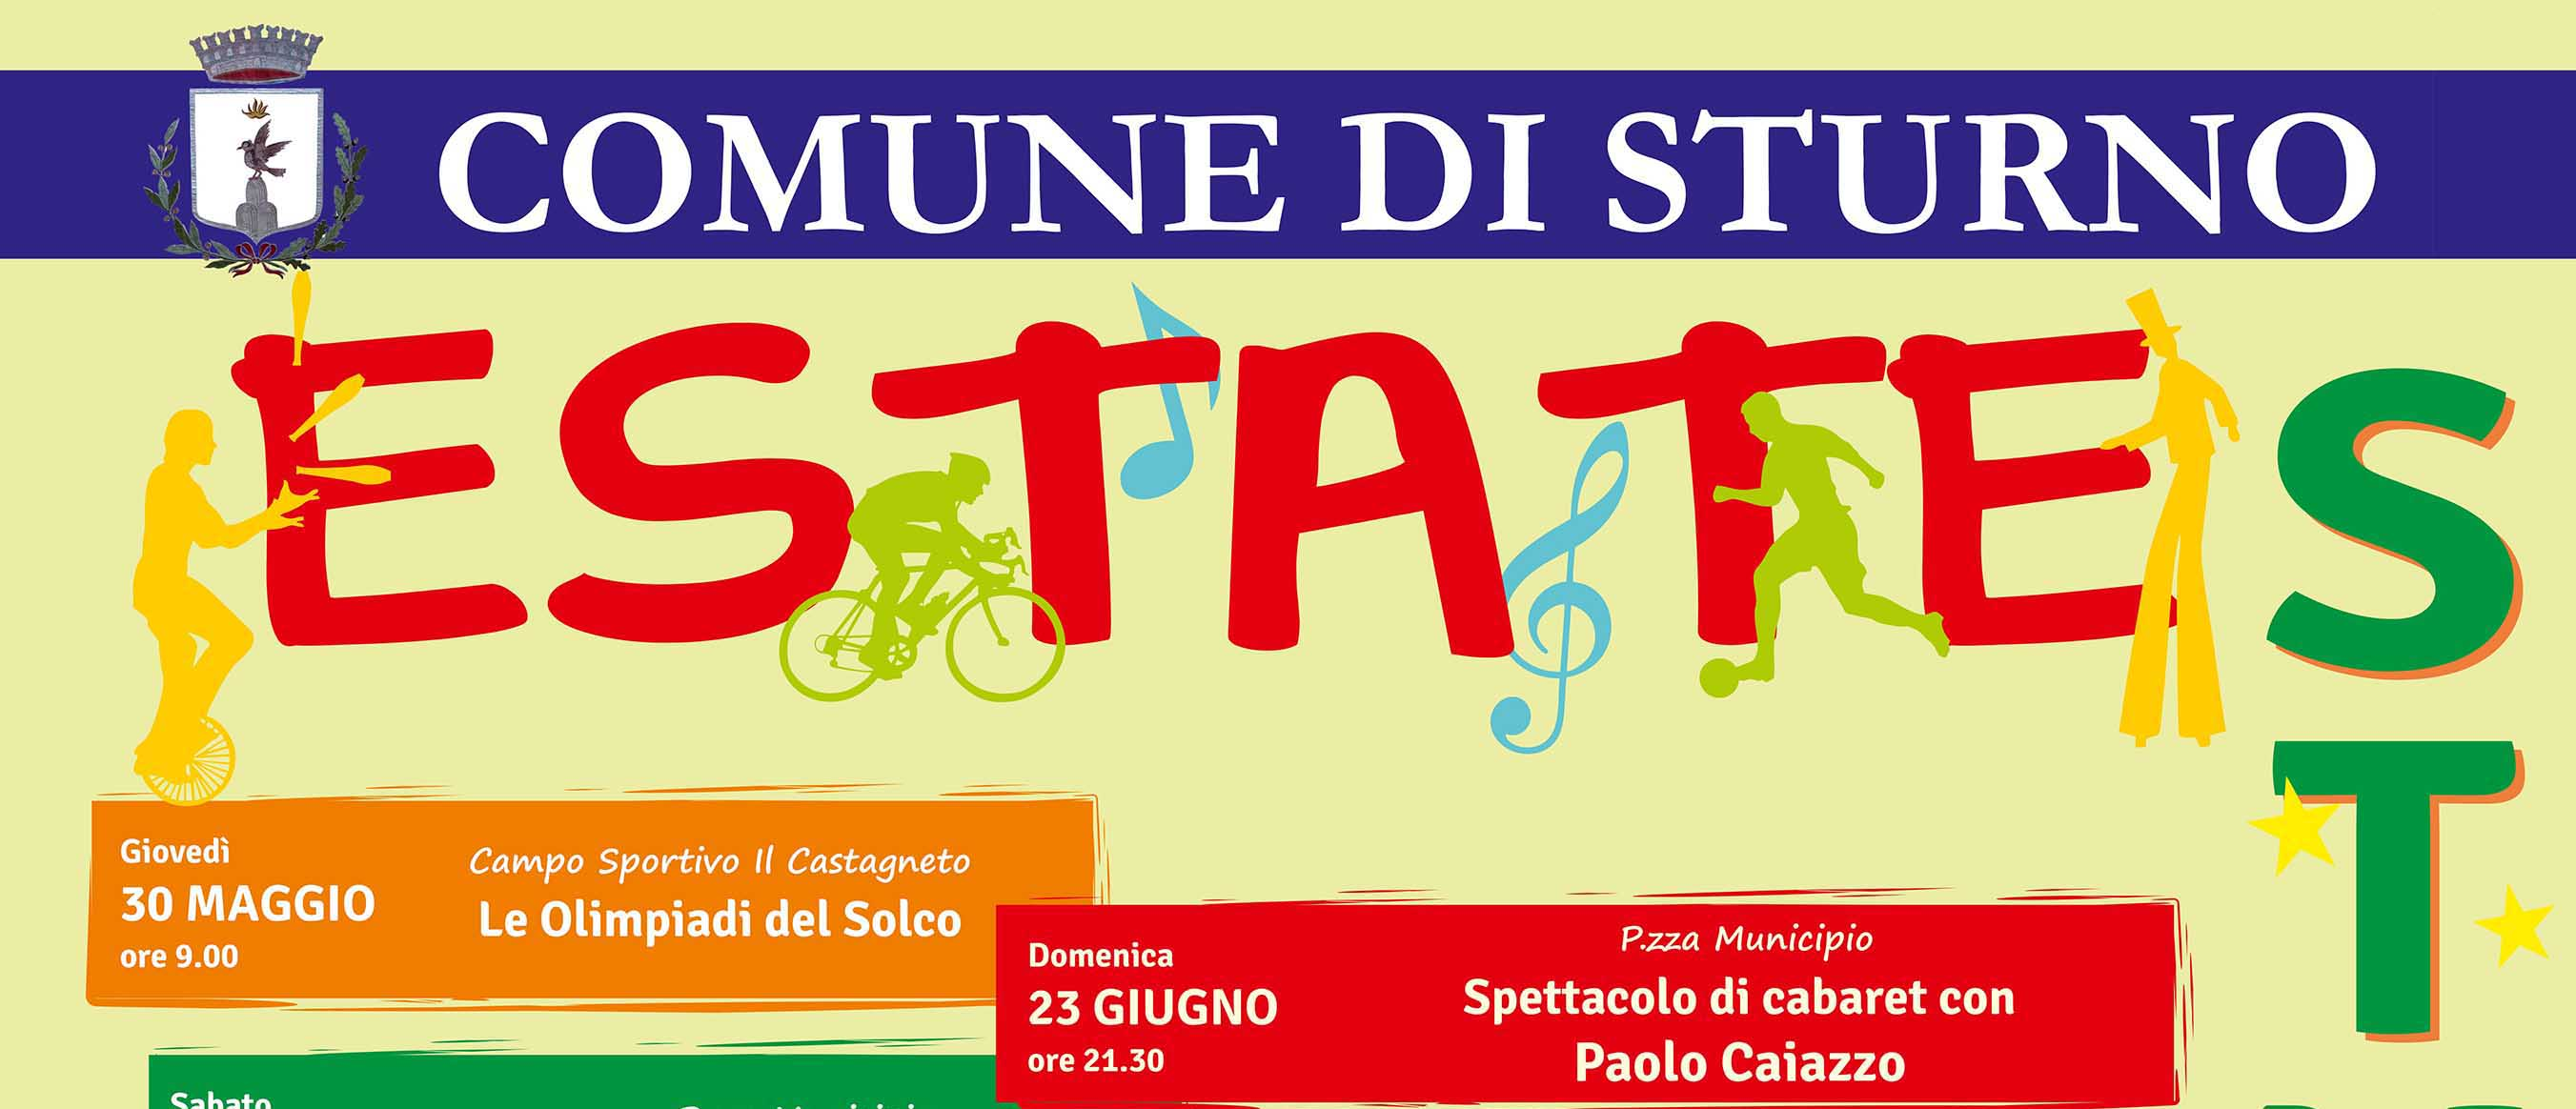 ESTATE STURNESE 2019